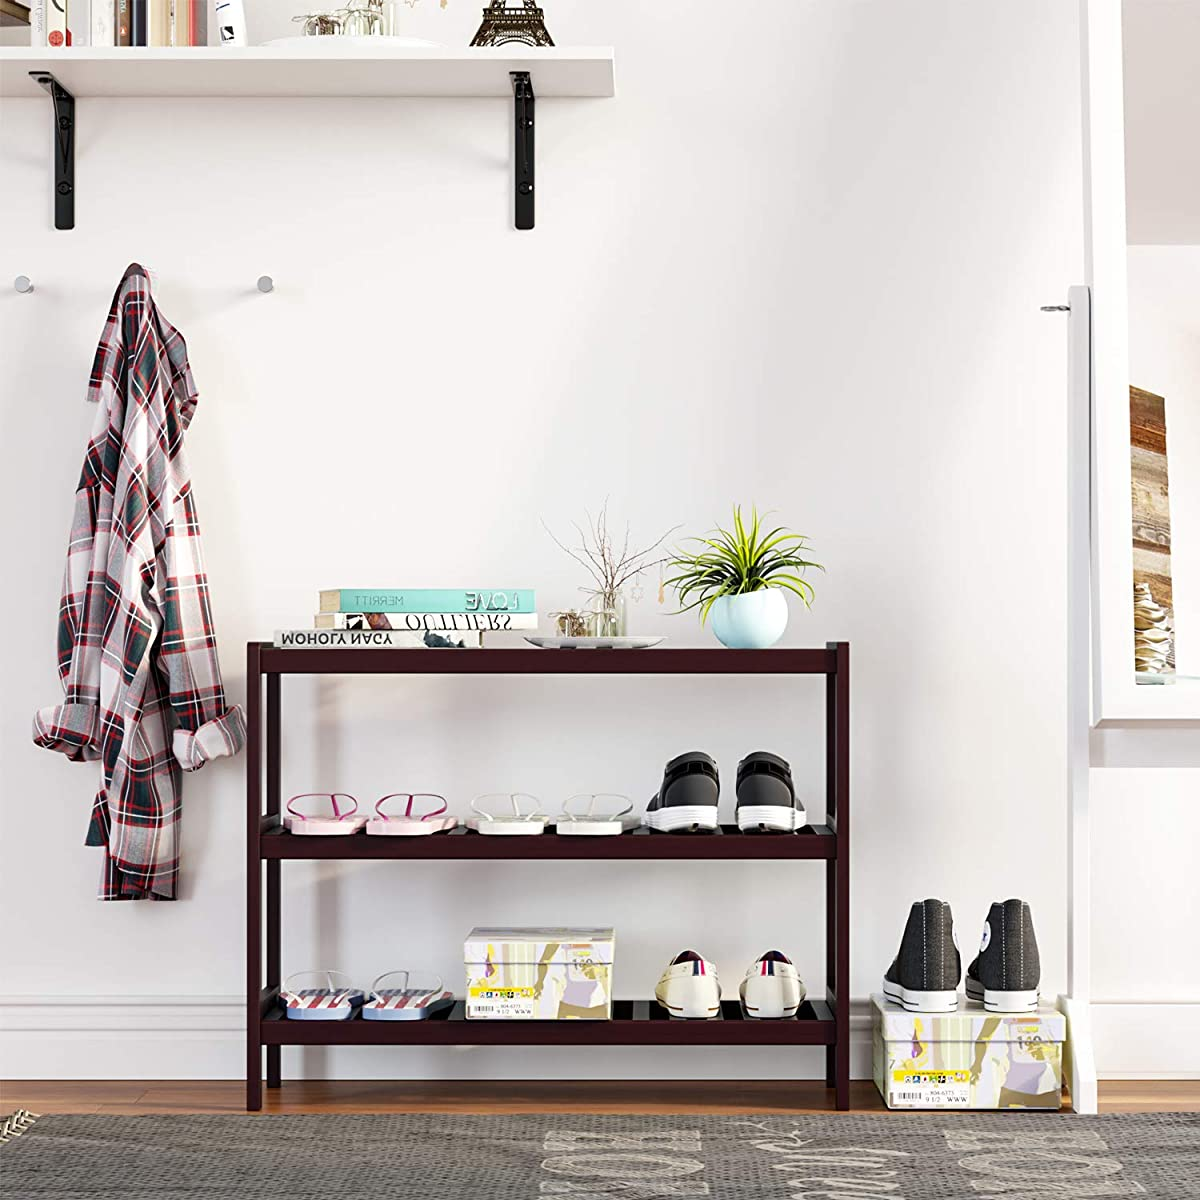 Homfa Shoe Rack 3-Tier Bamboo Wood Storage Shelf for Entryway Bathroom Balcony for Boots Heels Plants and Books Free Standing Organizer Retro Color